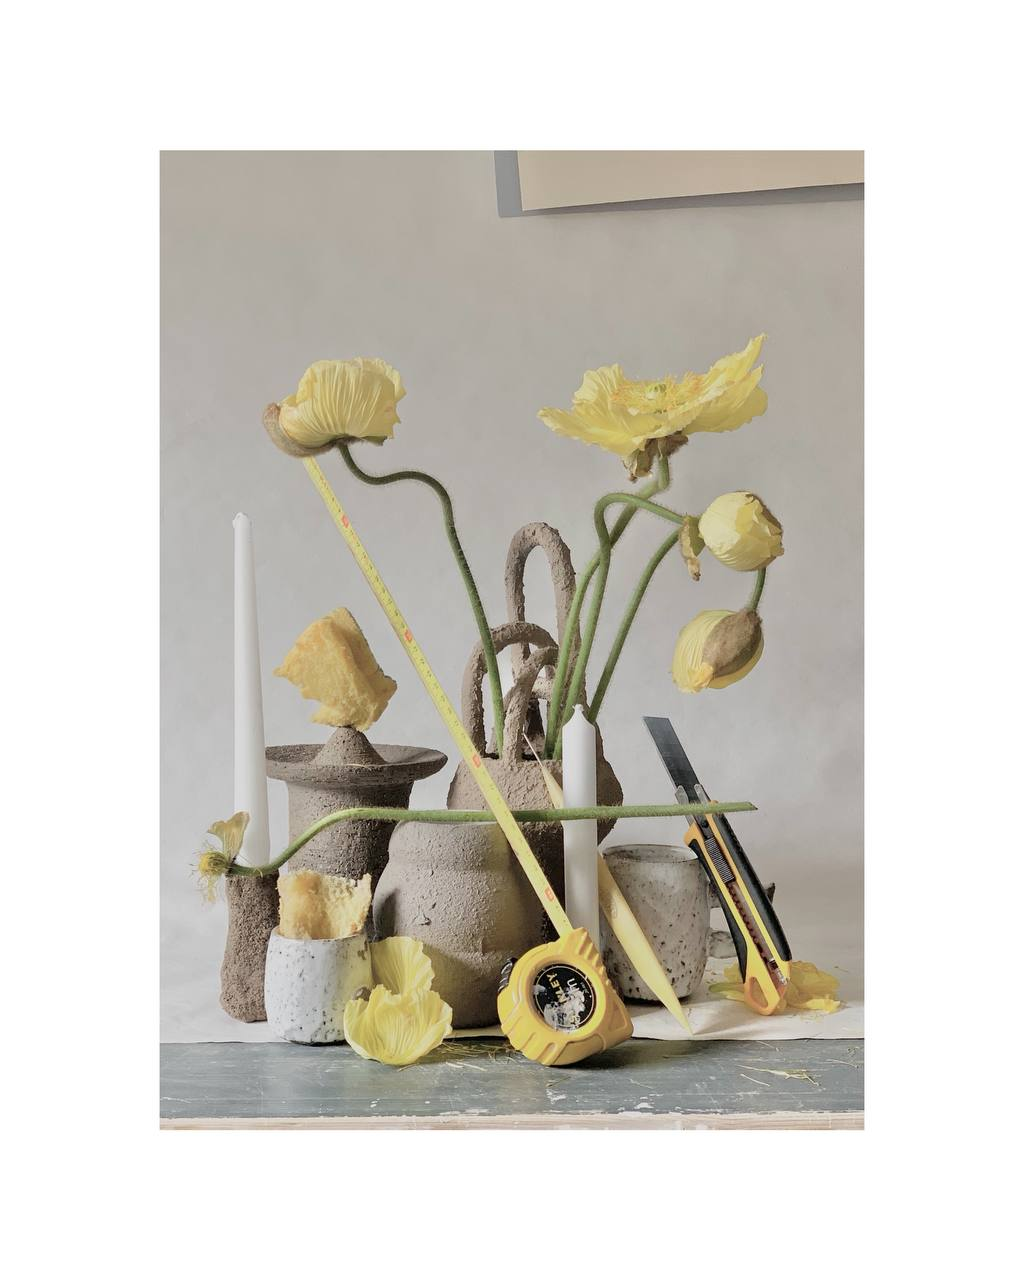 Still life of gray ceramic vases and different yellow objects